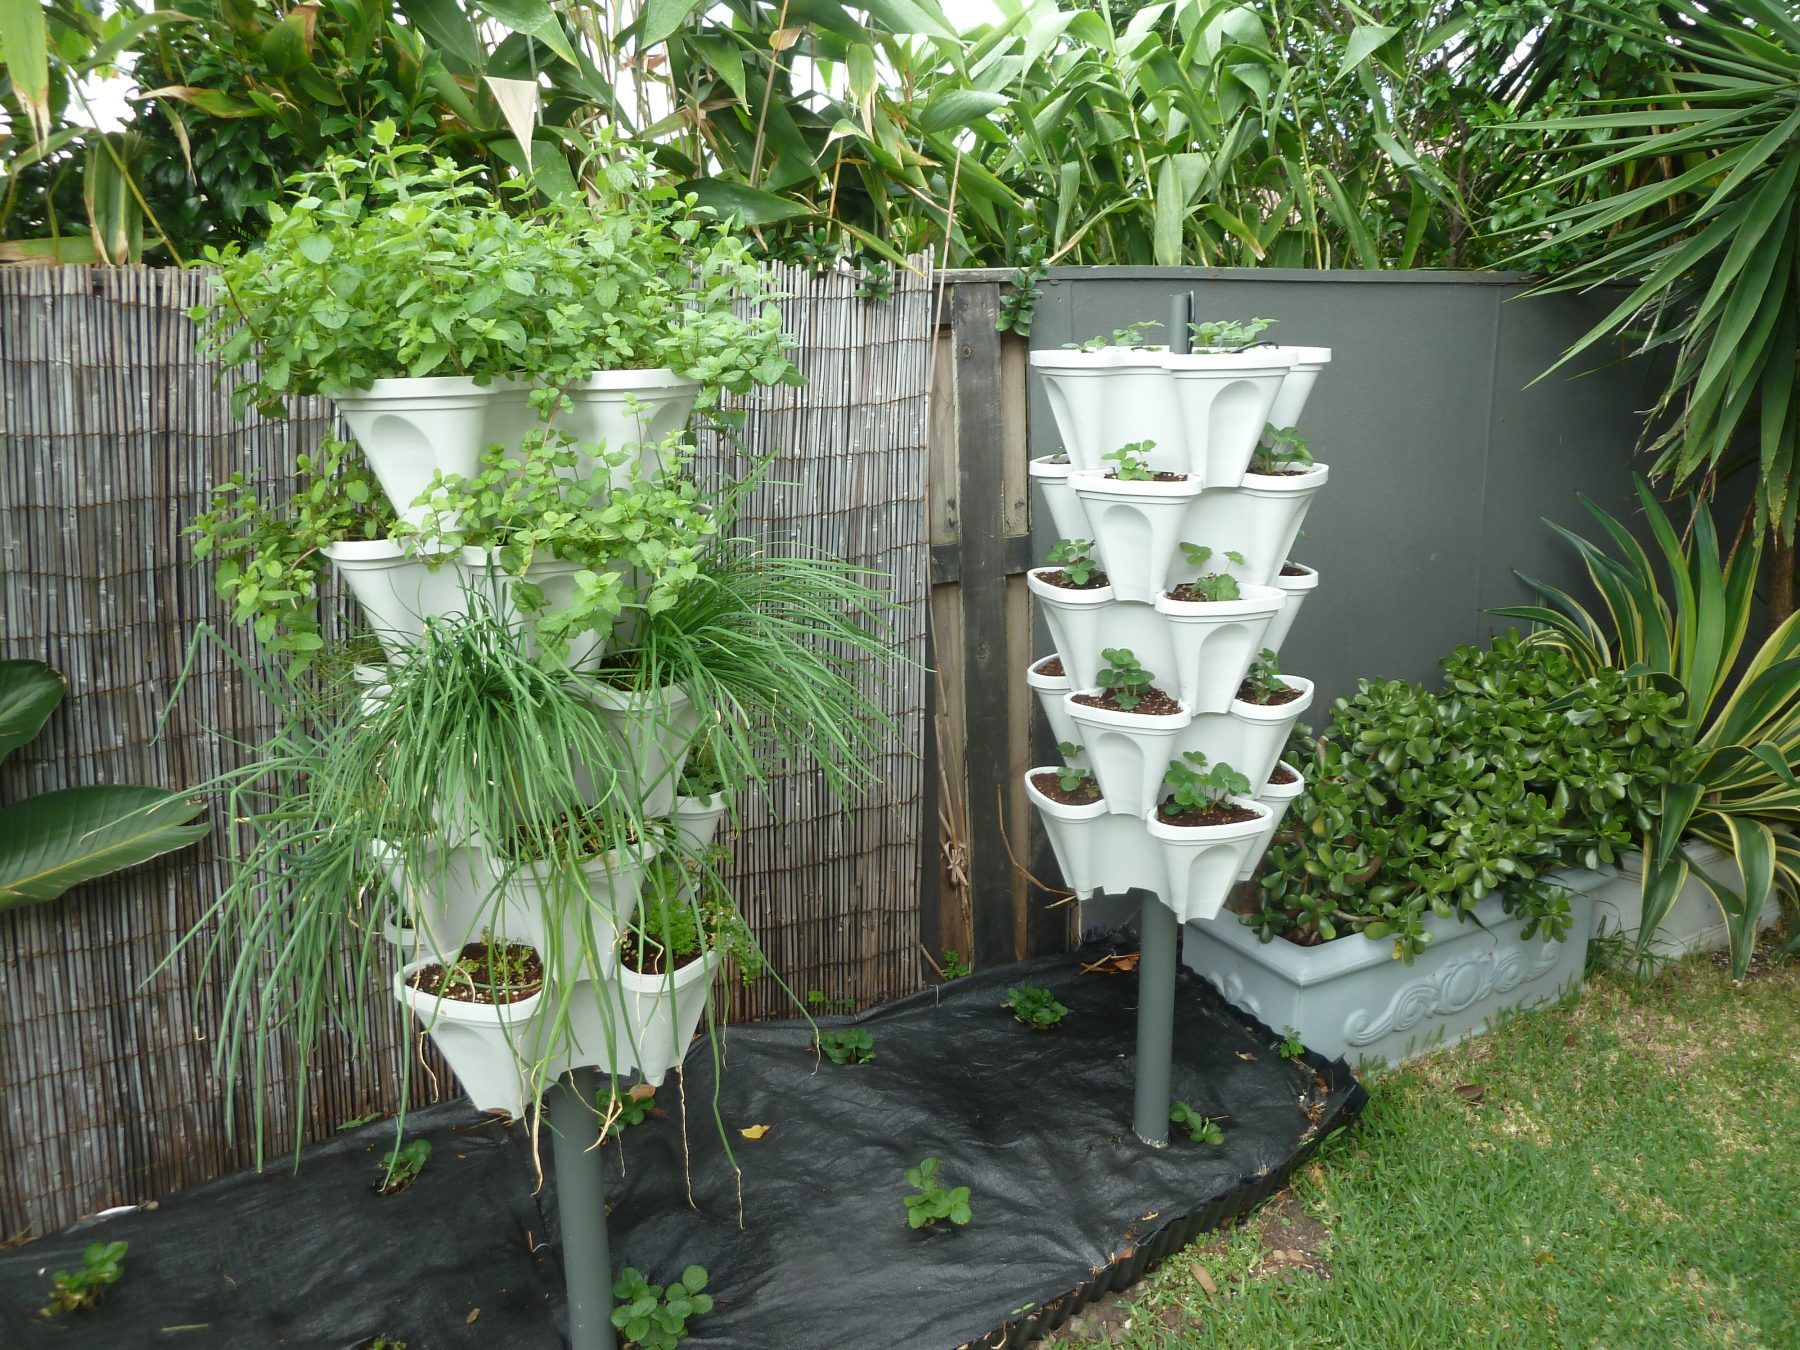 72 Plant DIY Hydroponics Kit - Don't bother with PVC pipes